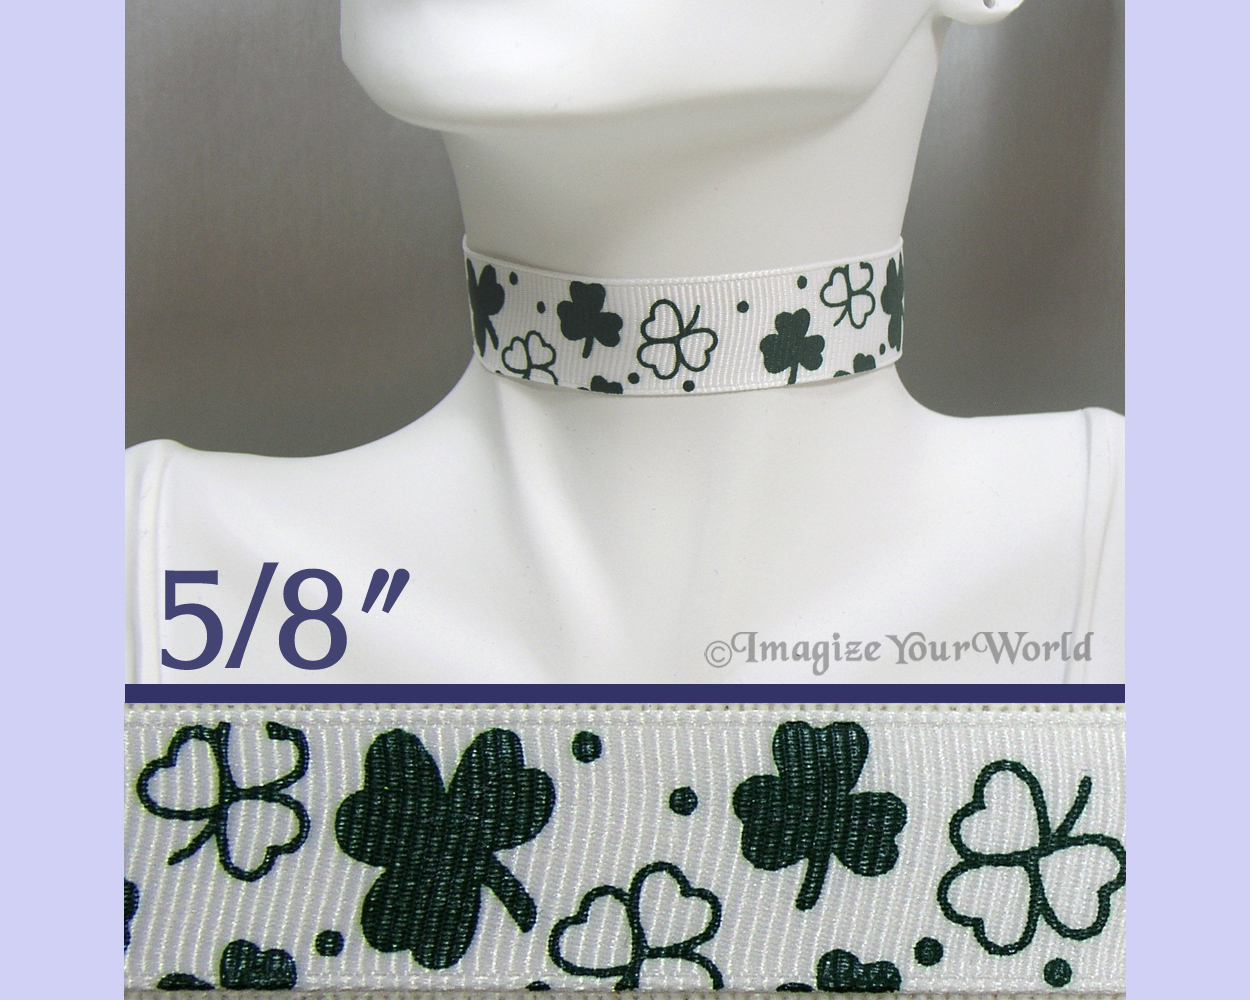 Rc shamrocks darkgreenonwhite  gallery